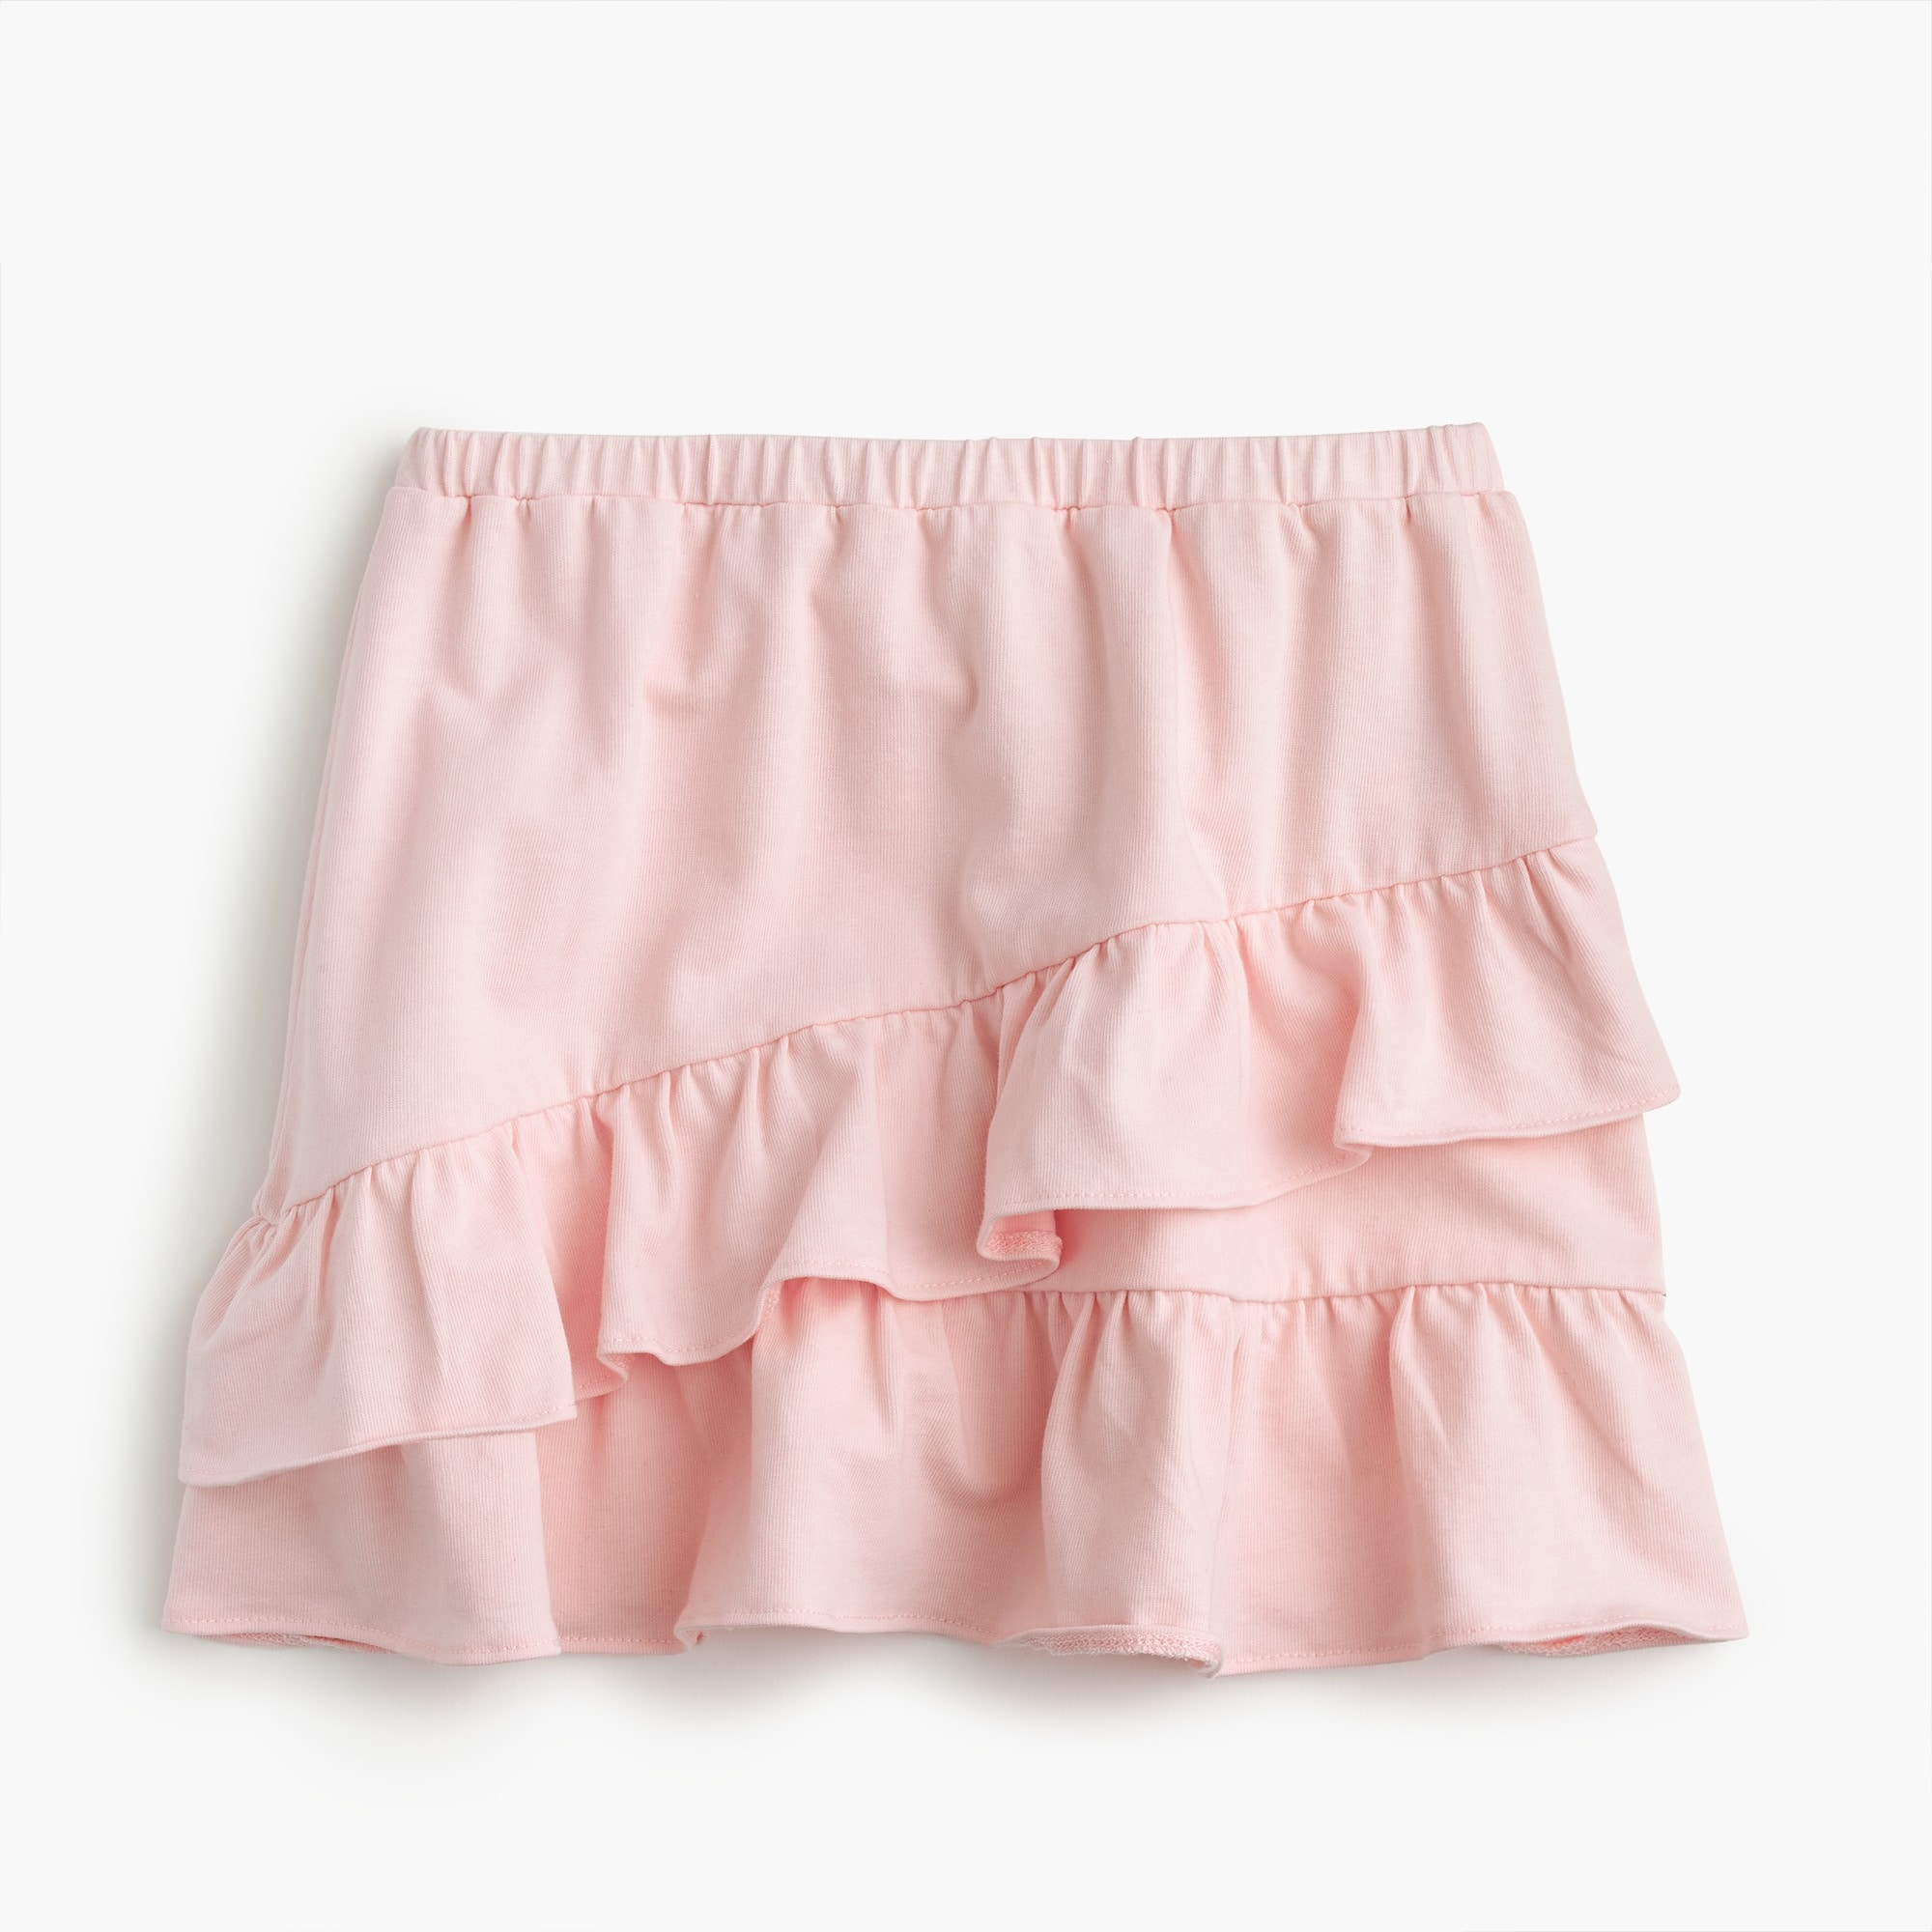 Girls' pull-on skirt with ruffles girl skirts c